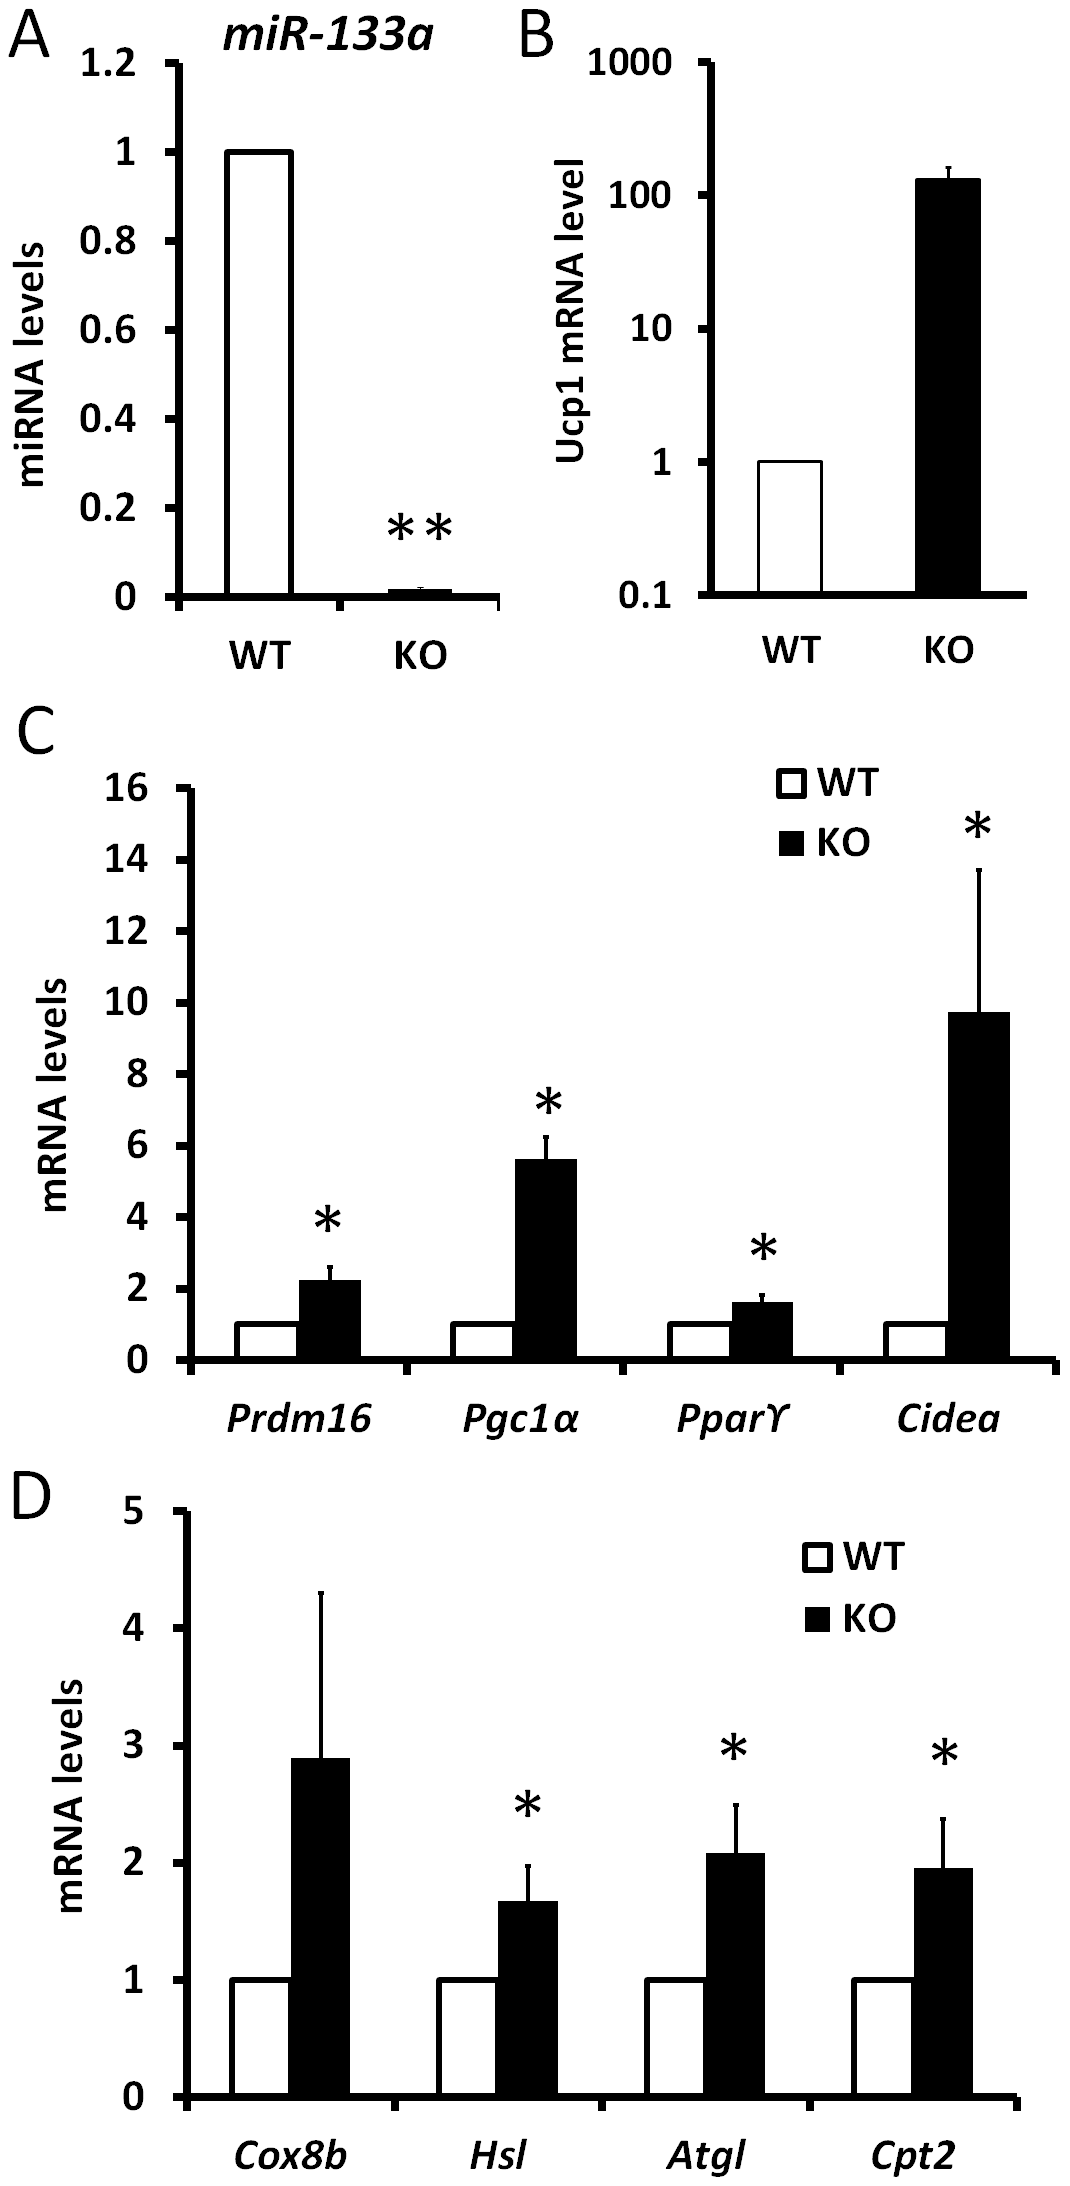 Knockdown of miR-133a promotes the activity of cold-inducible thermogenesis gene program in vivo.